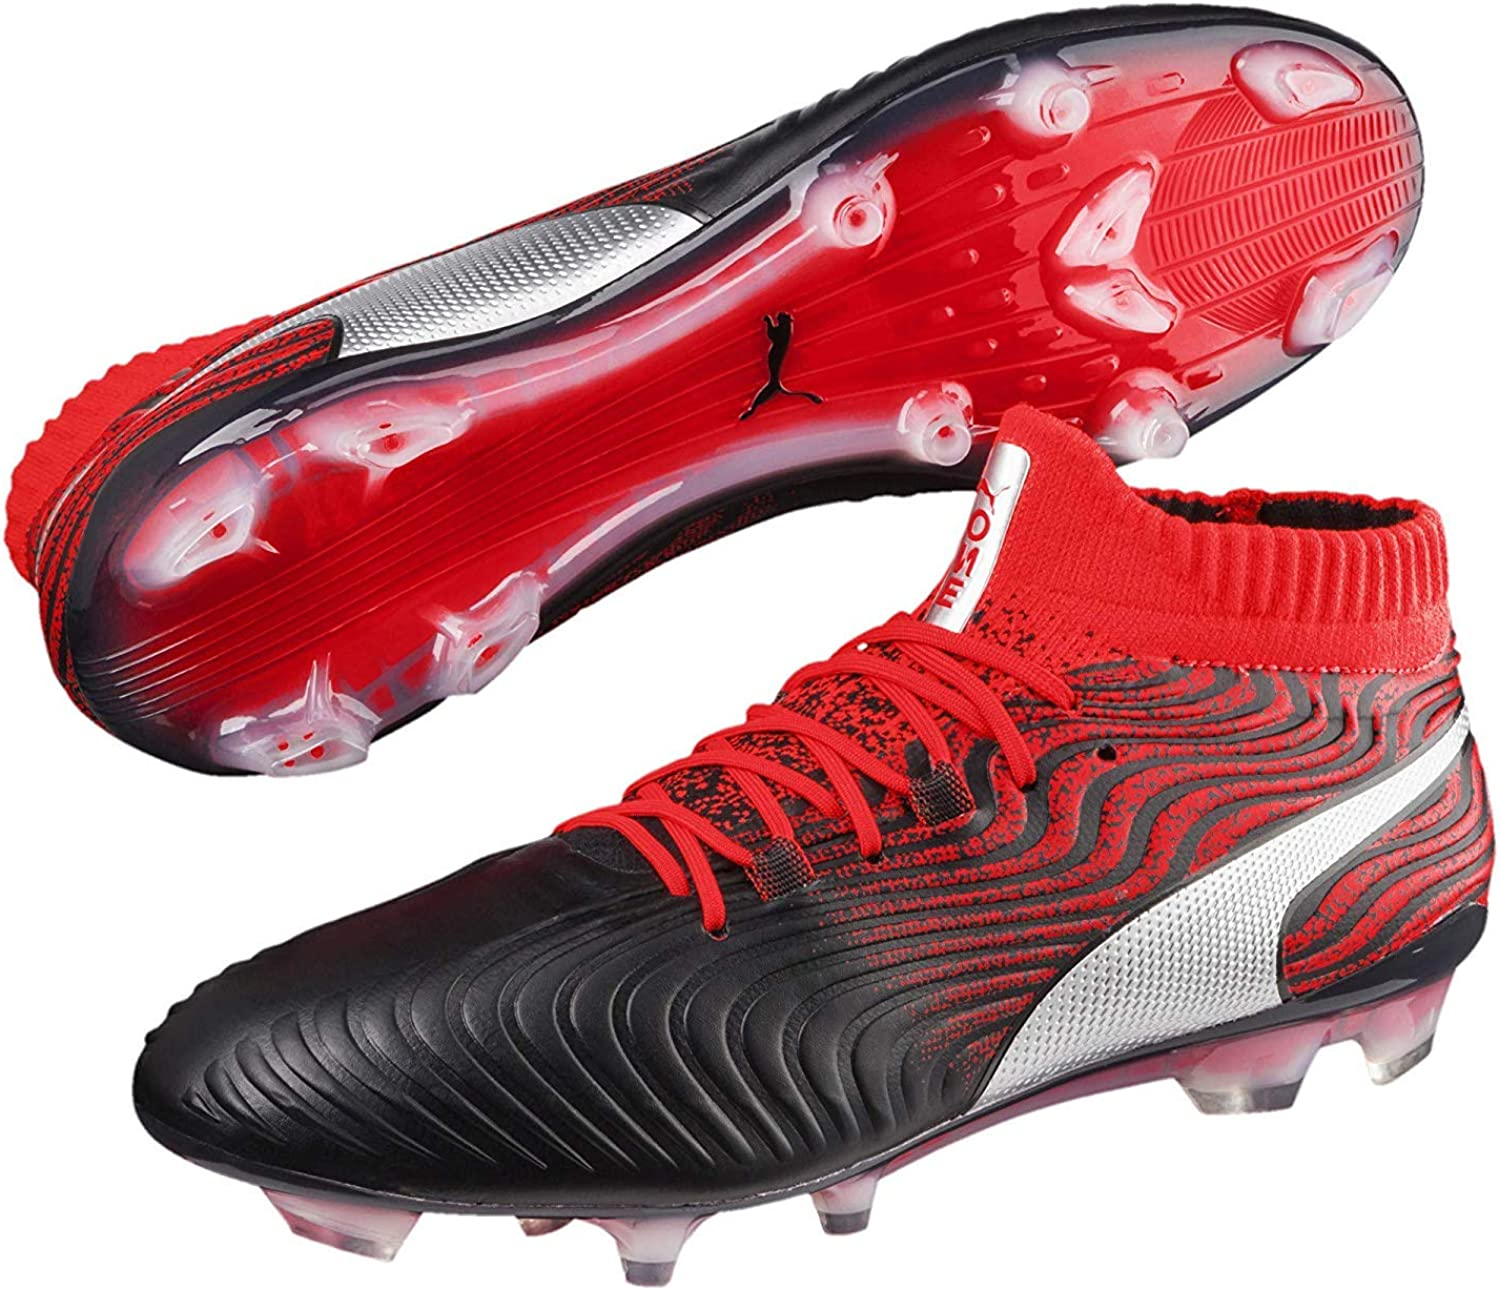 PUMA New ONE 18.1 Syn FG Soccer Cleats Men's Size 7-13 Black Red 104869-01